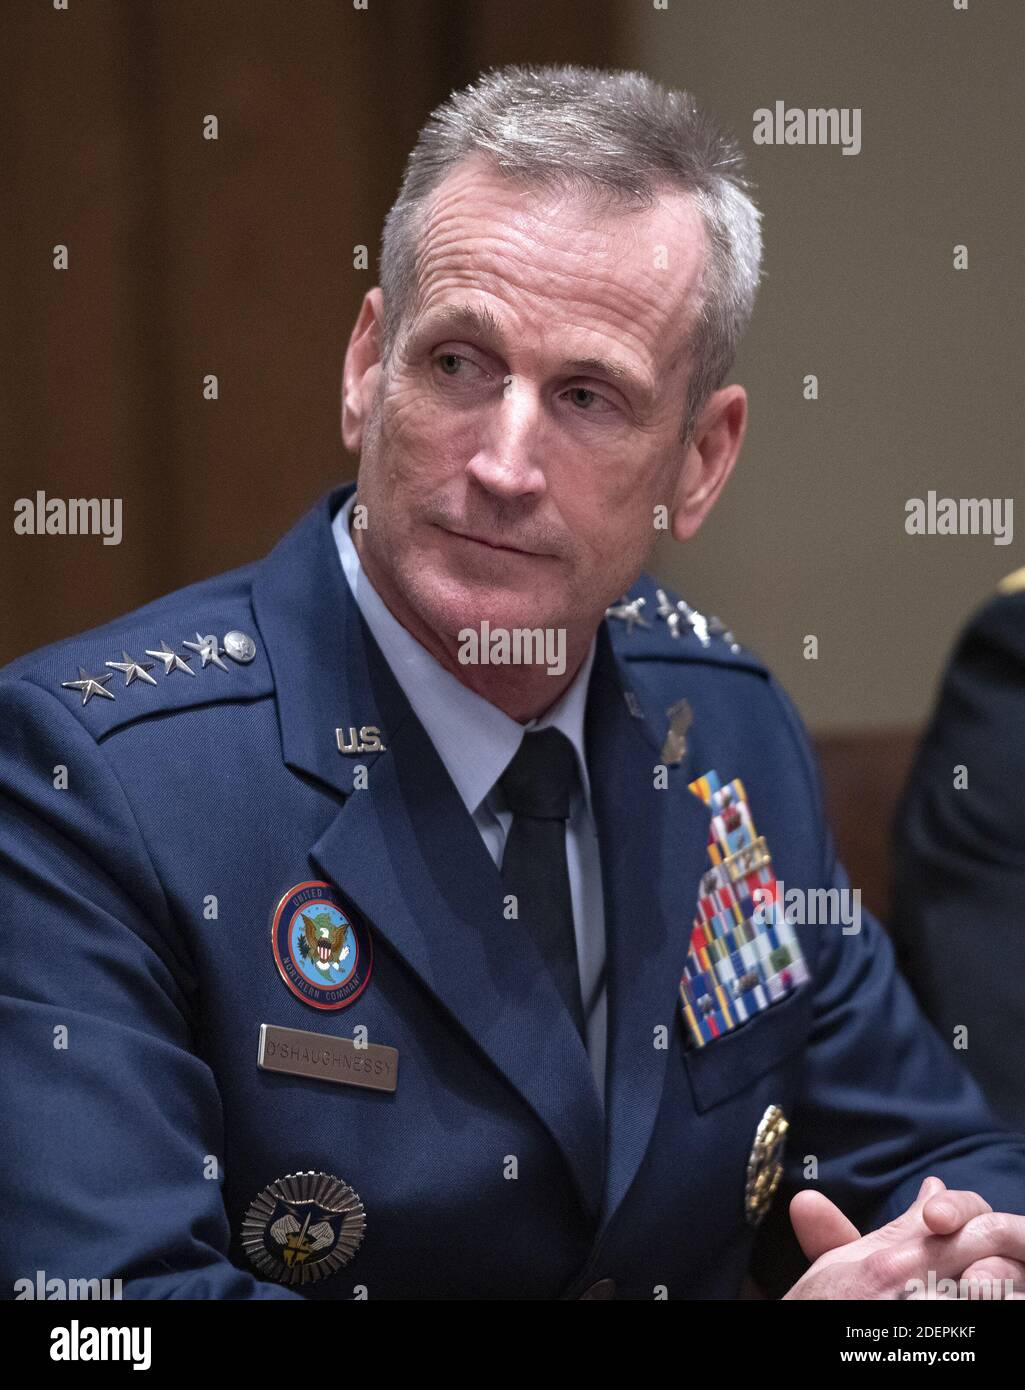 United States Air Force General Terrence John O'Shaughnessy, commander of the US Northern Command and commander of the North American Aerospace Defense Command, participates in a briefing with US President Donald J. Trump and senior military leaders in the Cabinet Room of the White House in Washington, DC, USA on Monday, October 7, 2019. Photo by Ron Sachs/CNP/ABACAPRESS.COM Stock Photo